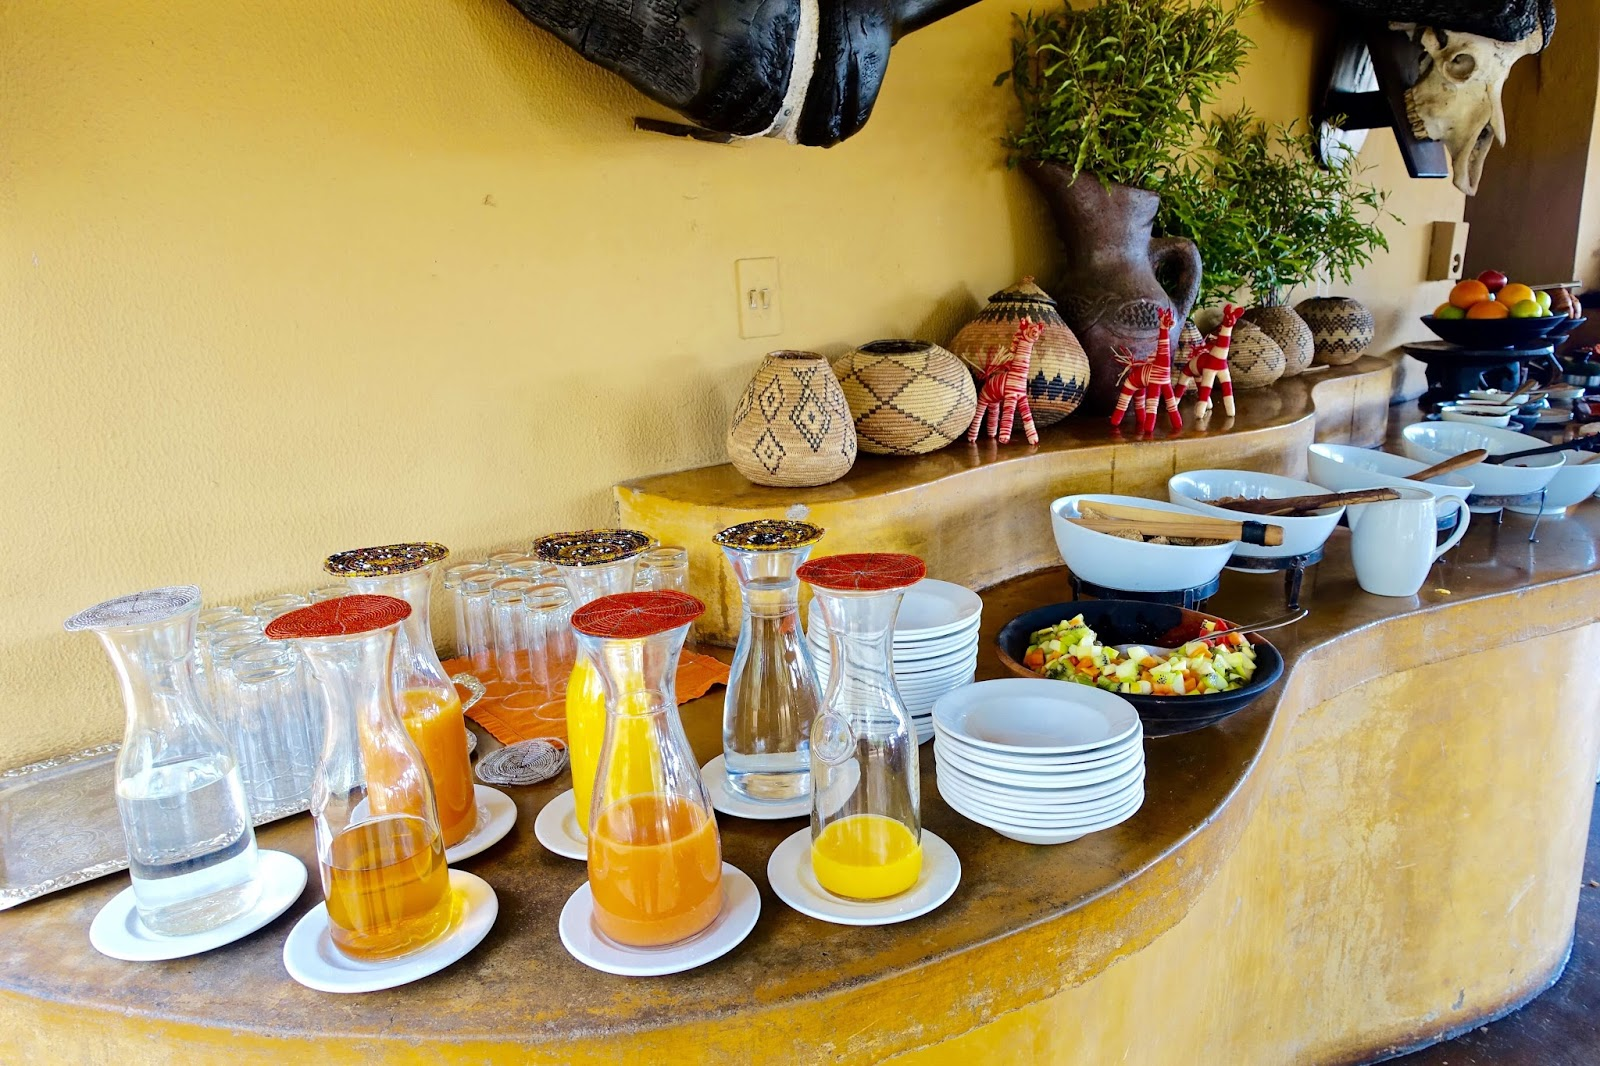 buffet breakfast at motswari newmark hotels